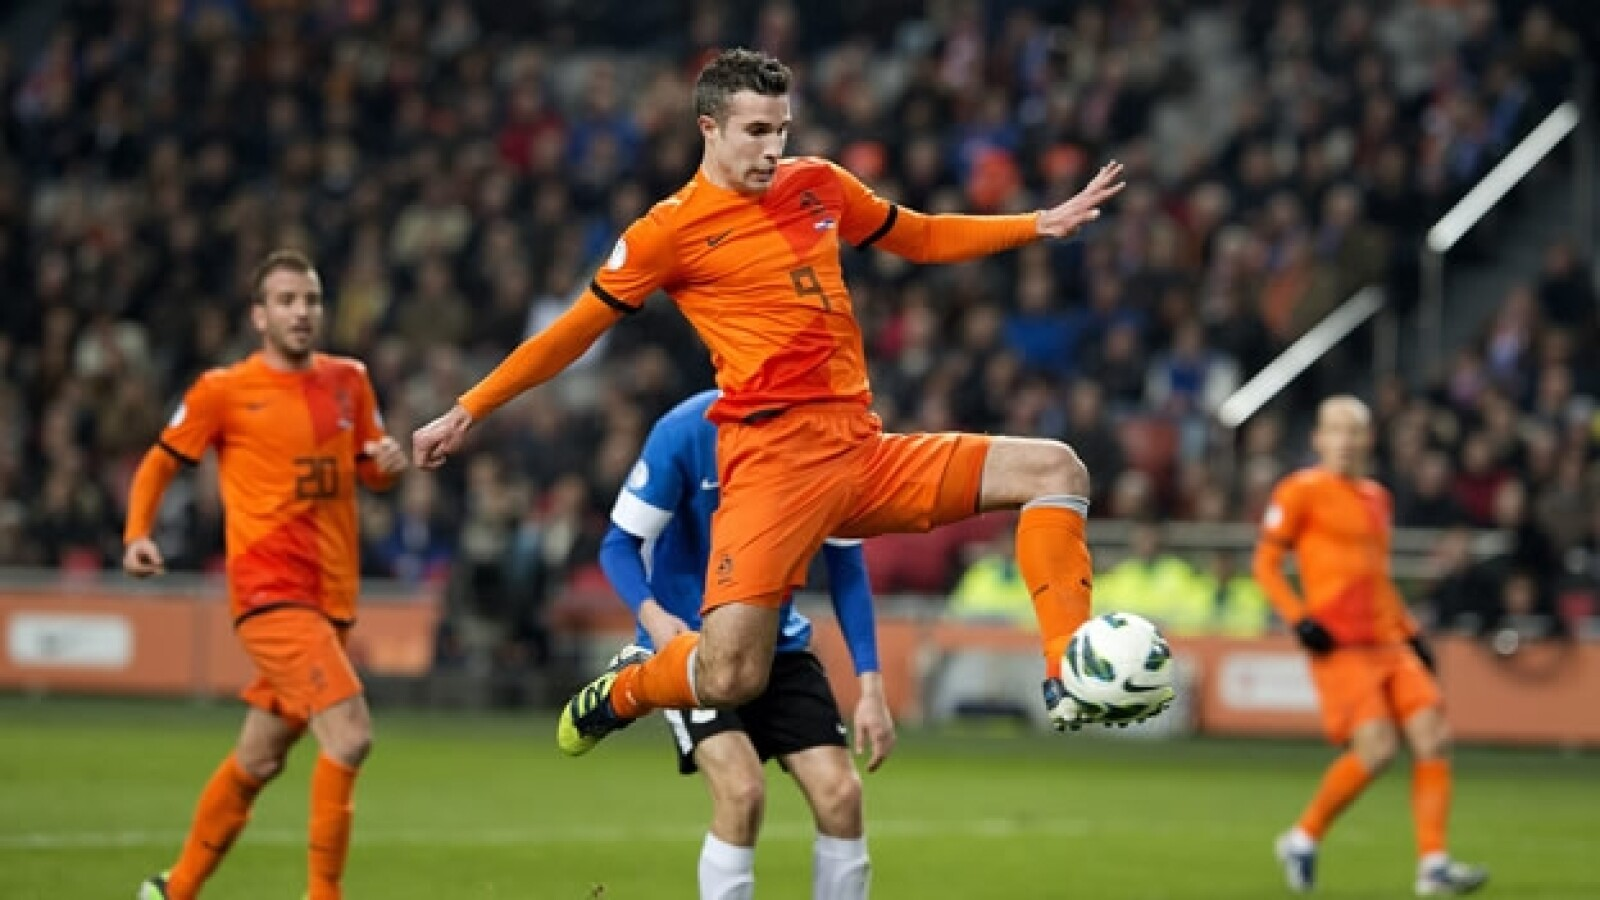 Holanda vs. Estonia